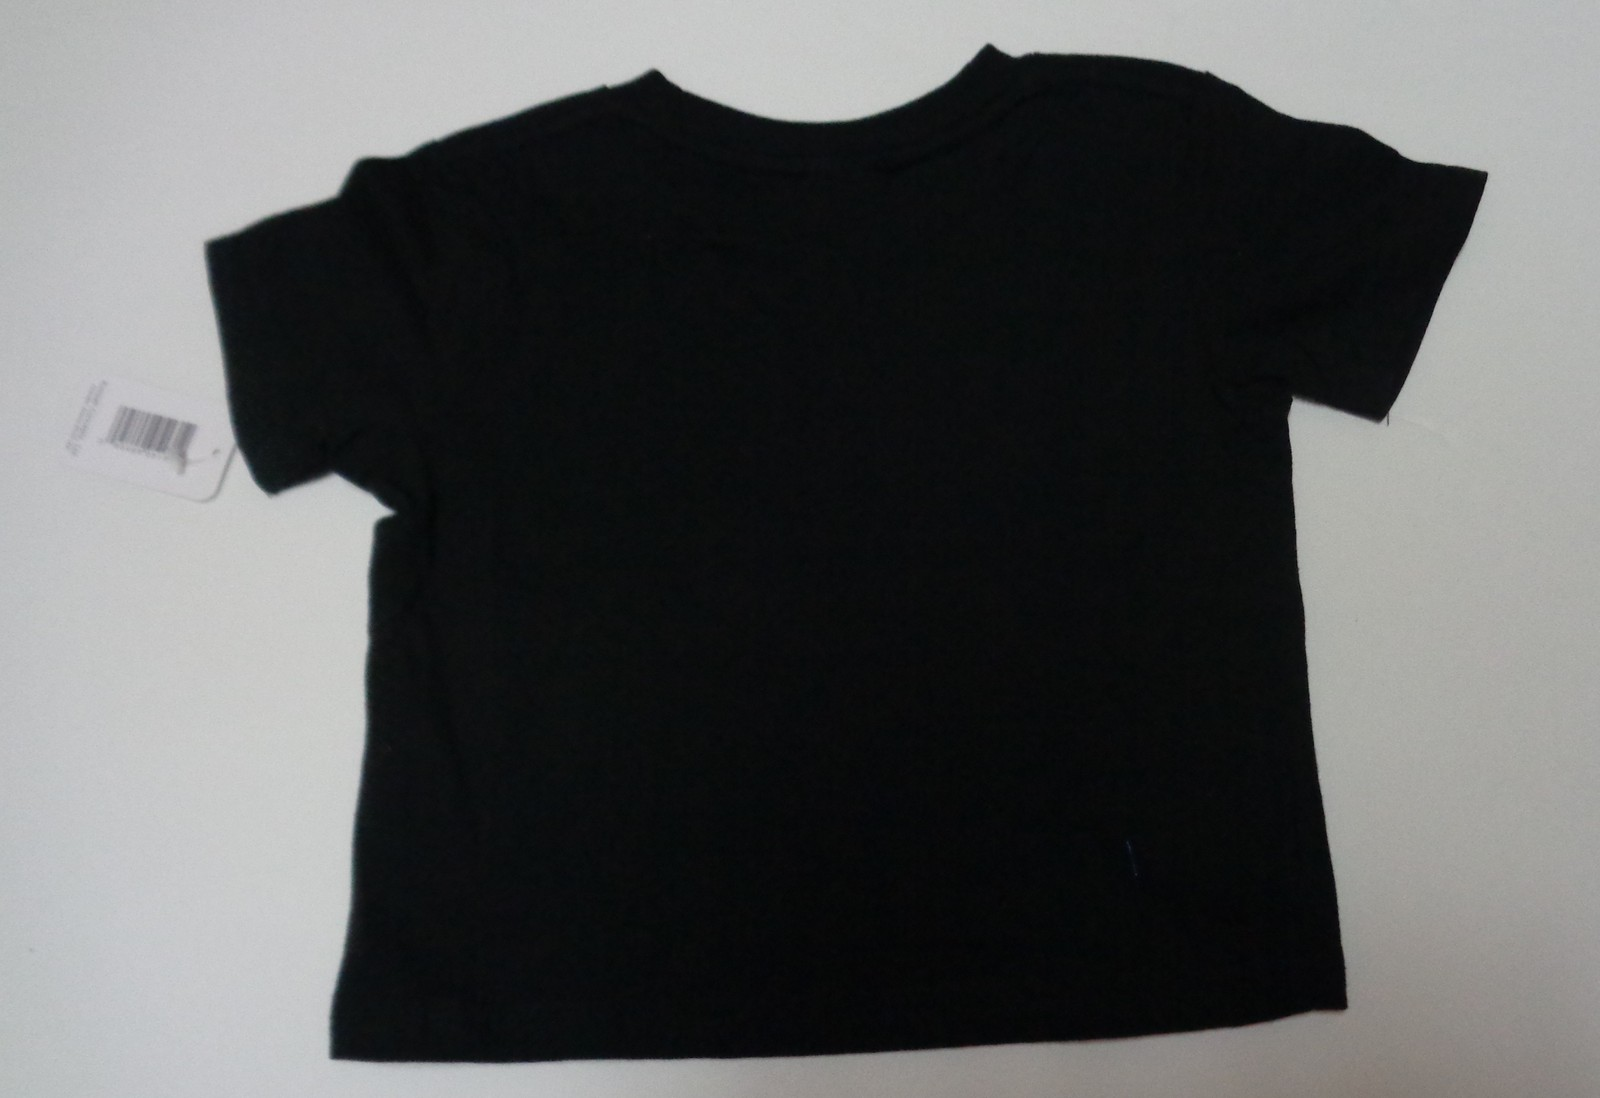 MY MOM ROCKS ToddlerT-Shirt by Little Teez NWT Sz 3T